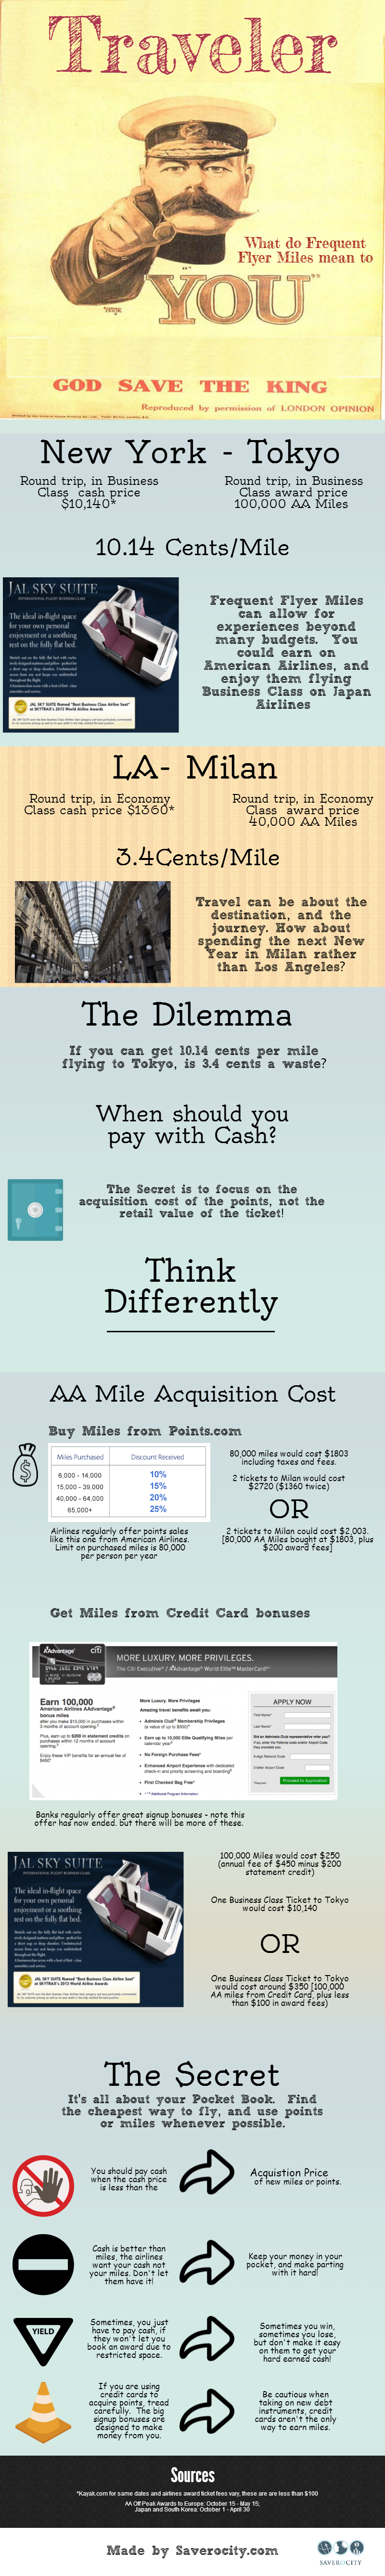 When to pay with miles and when to pay with cash